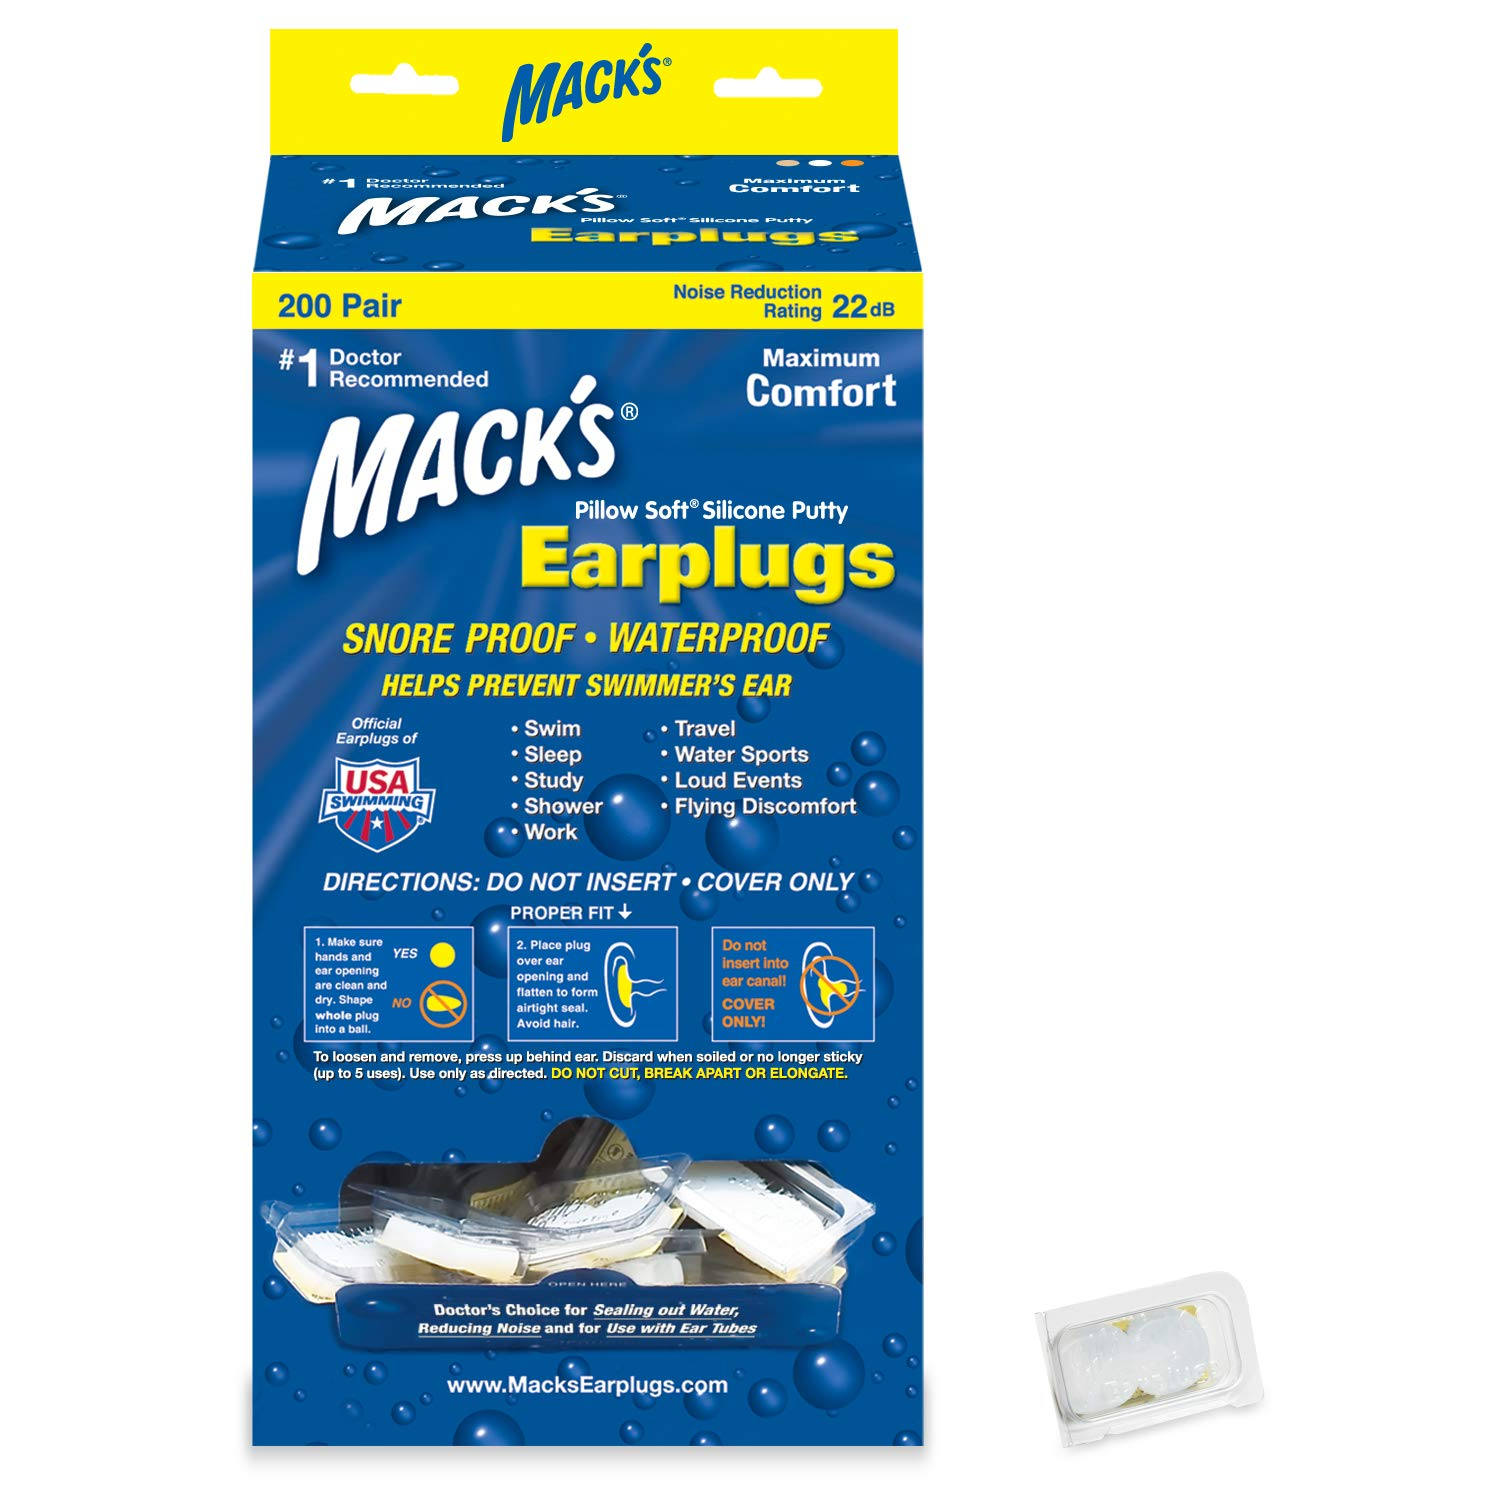 Mack's Pillow Soft Silicone Earplugs - 200 Pair Dispenser - The Original Moldable Silicone Putty Ear Plugs for Sleeping, Snoring, Swimming, Travel, Concerts and Studying by Mack's (Image #1)